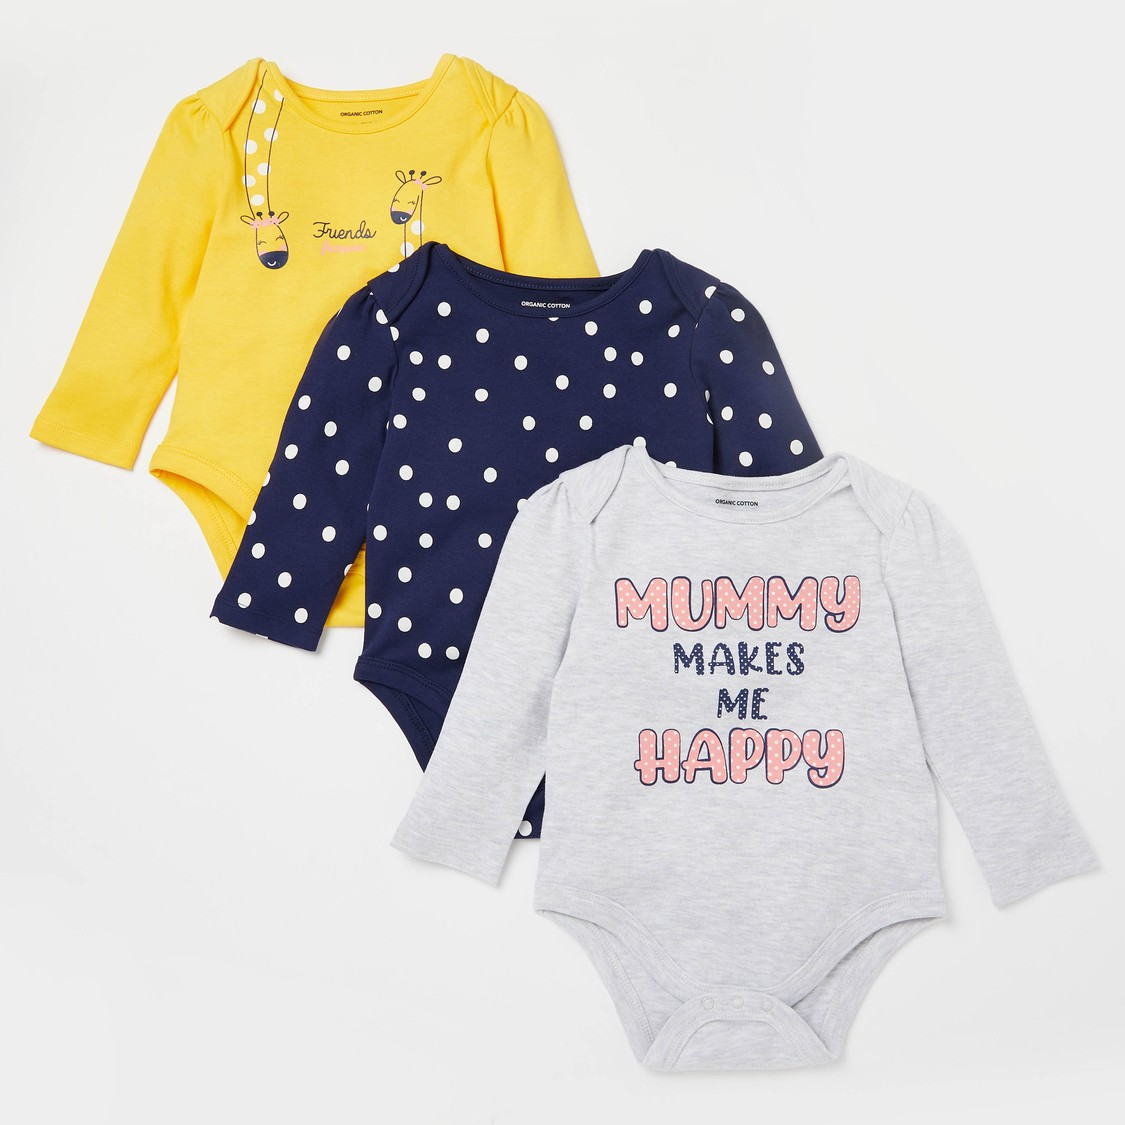 Pack of 3 - Printed Bodysuits with Long Sleeves and Round Neck